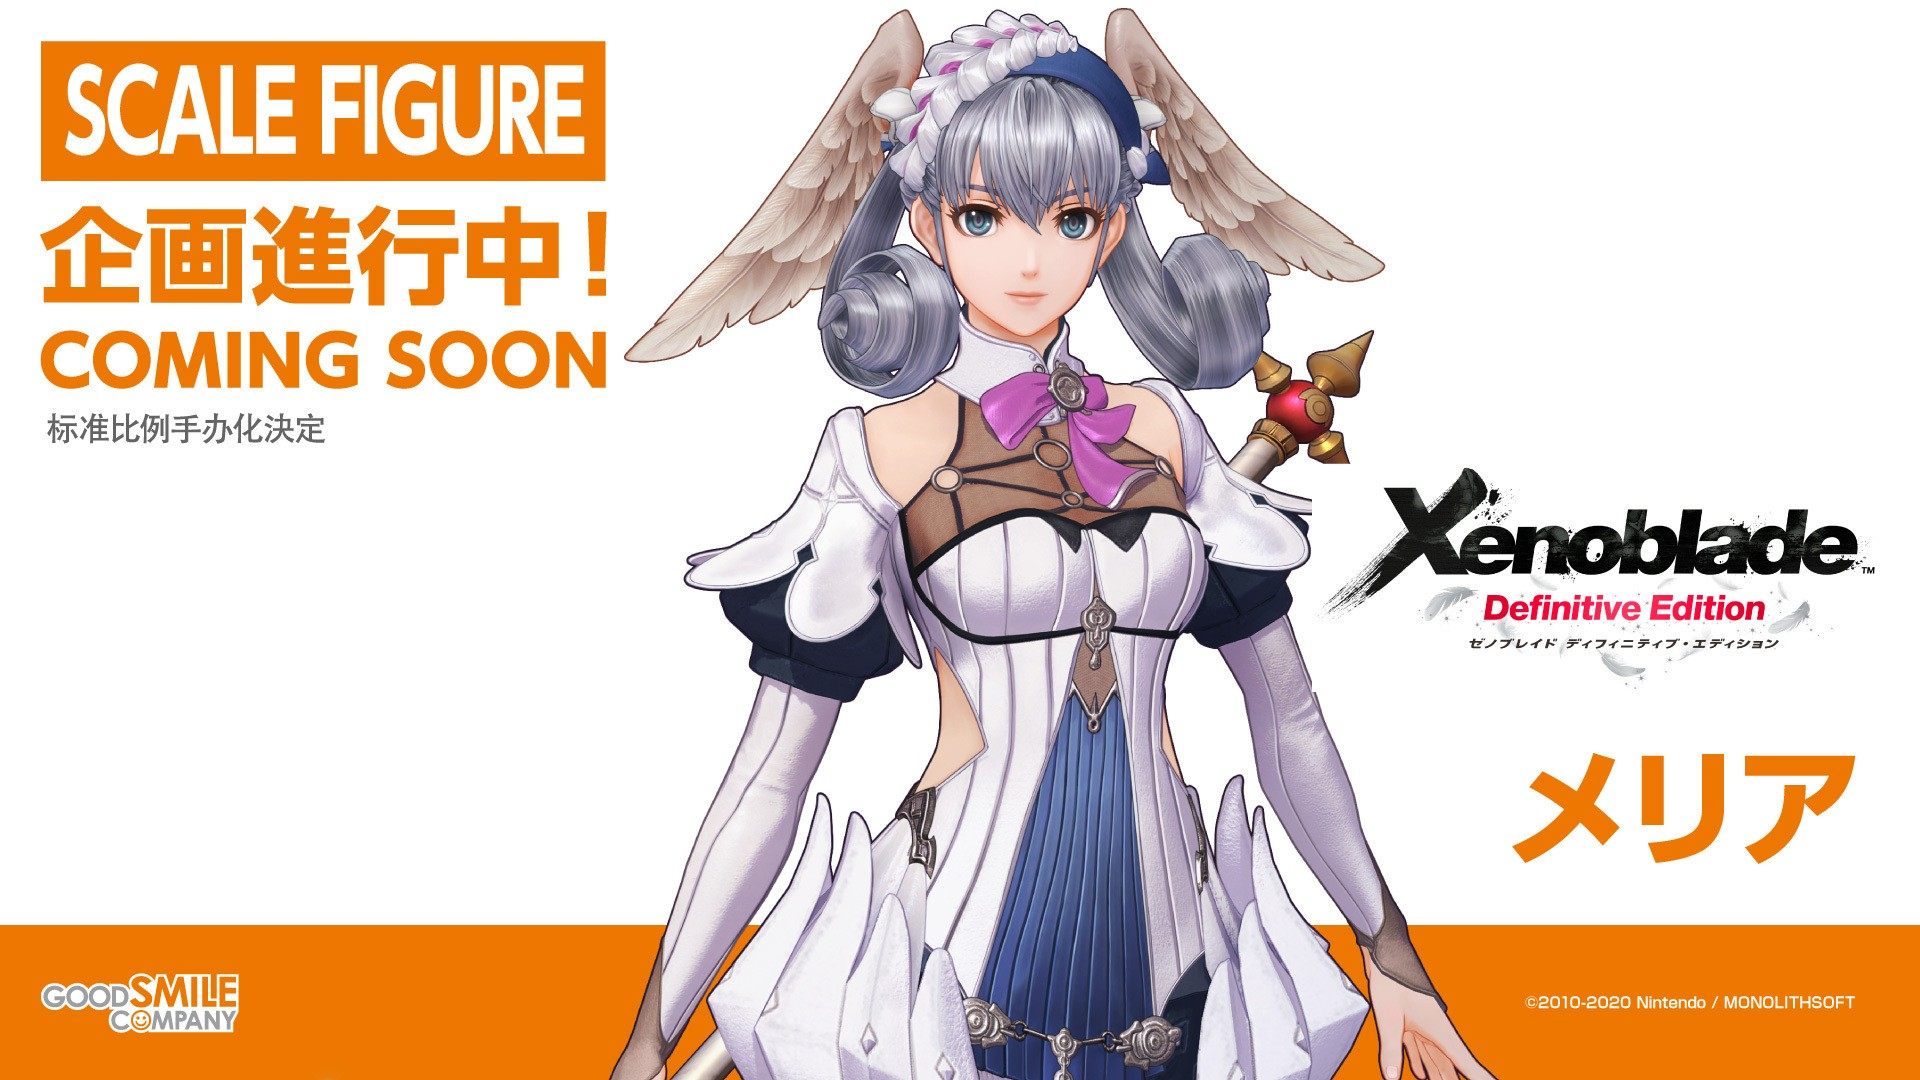 melia-figure-nintendon